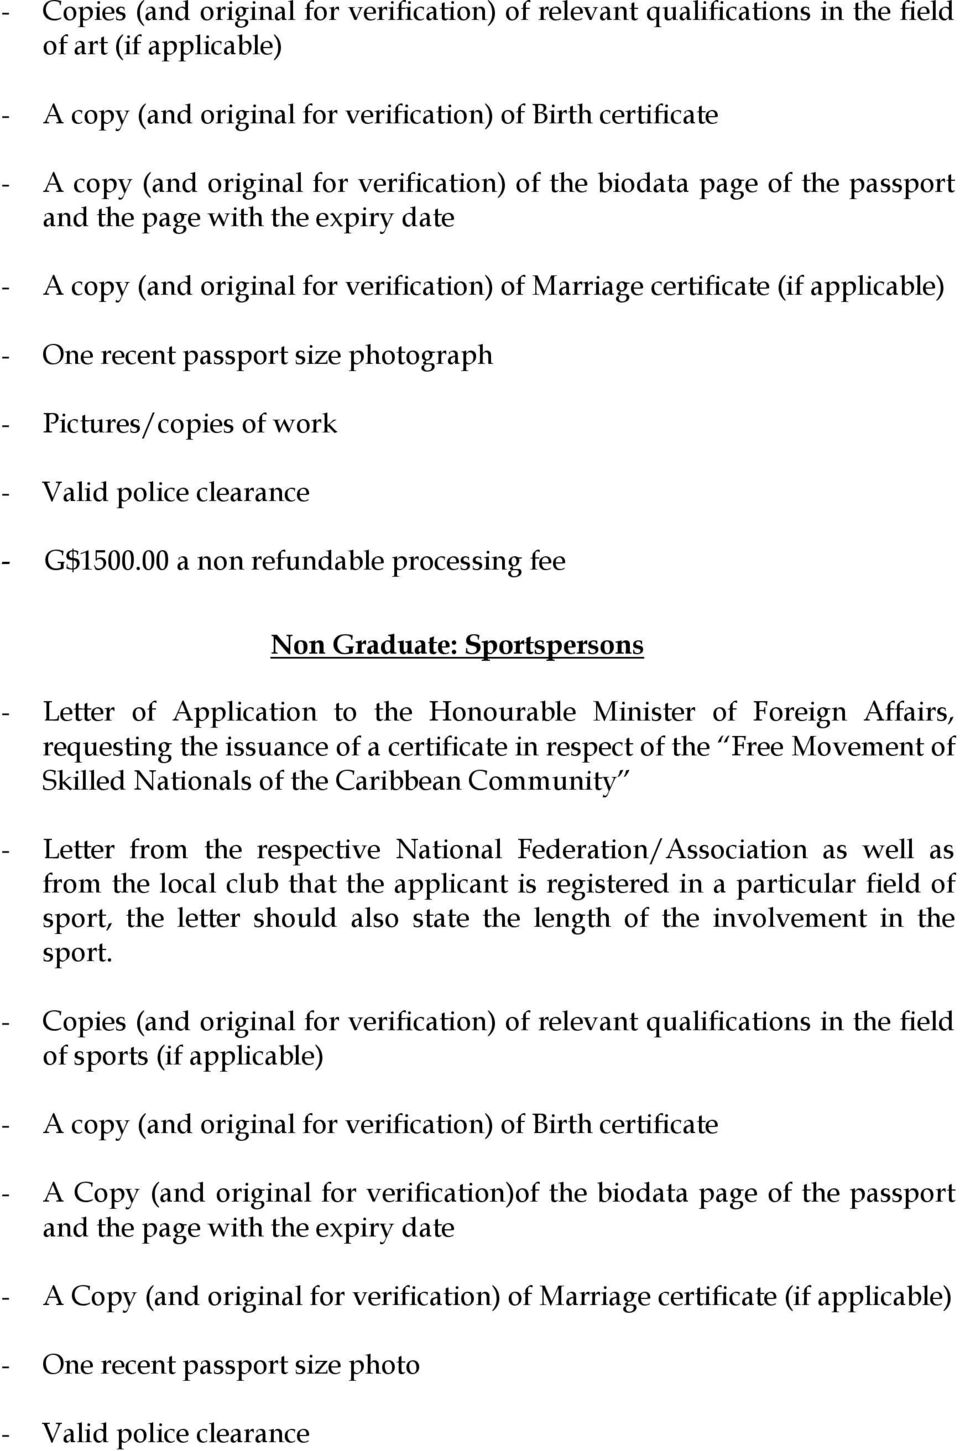 from the respective National Federation/Association as well as from the local club that the applicant is registered in a particular field of sport, the letter should also state the length of the